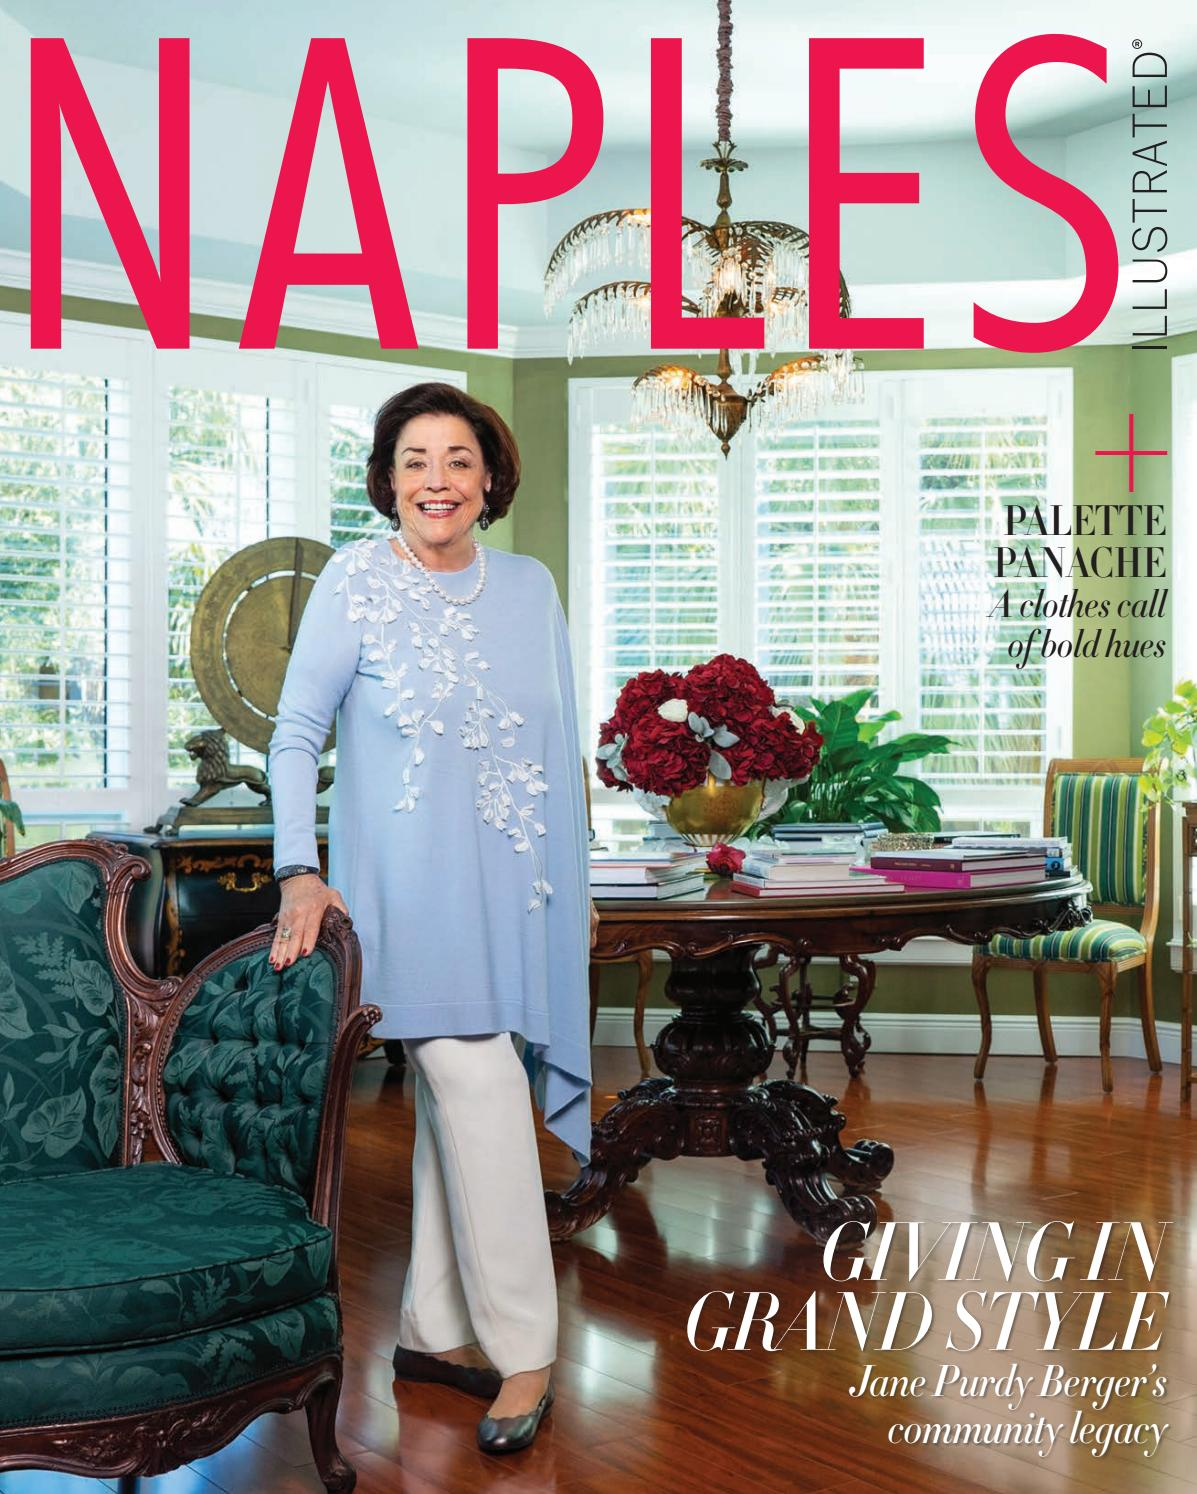 ec1727545a24 Naples Illustrated March 2019 by Palm Beach Media Group - issuu